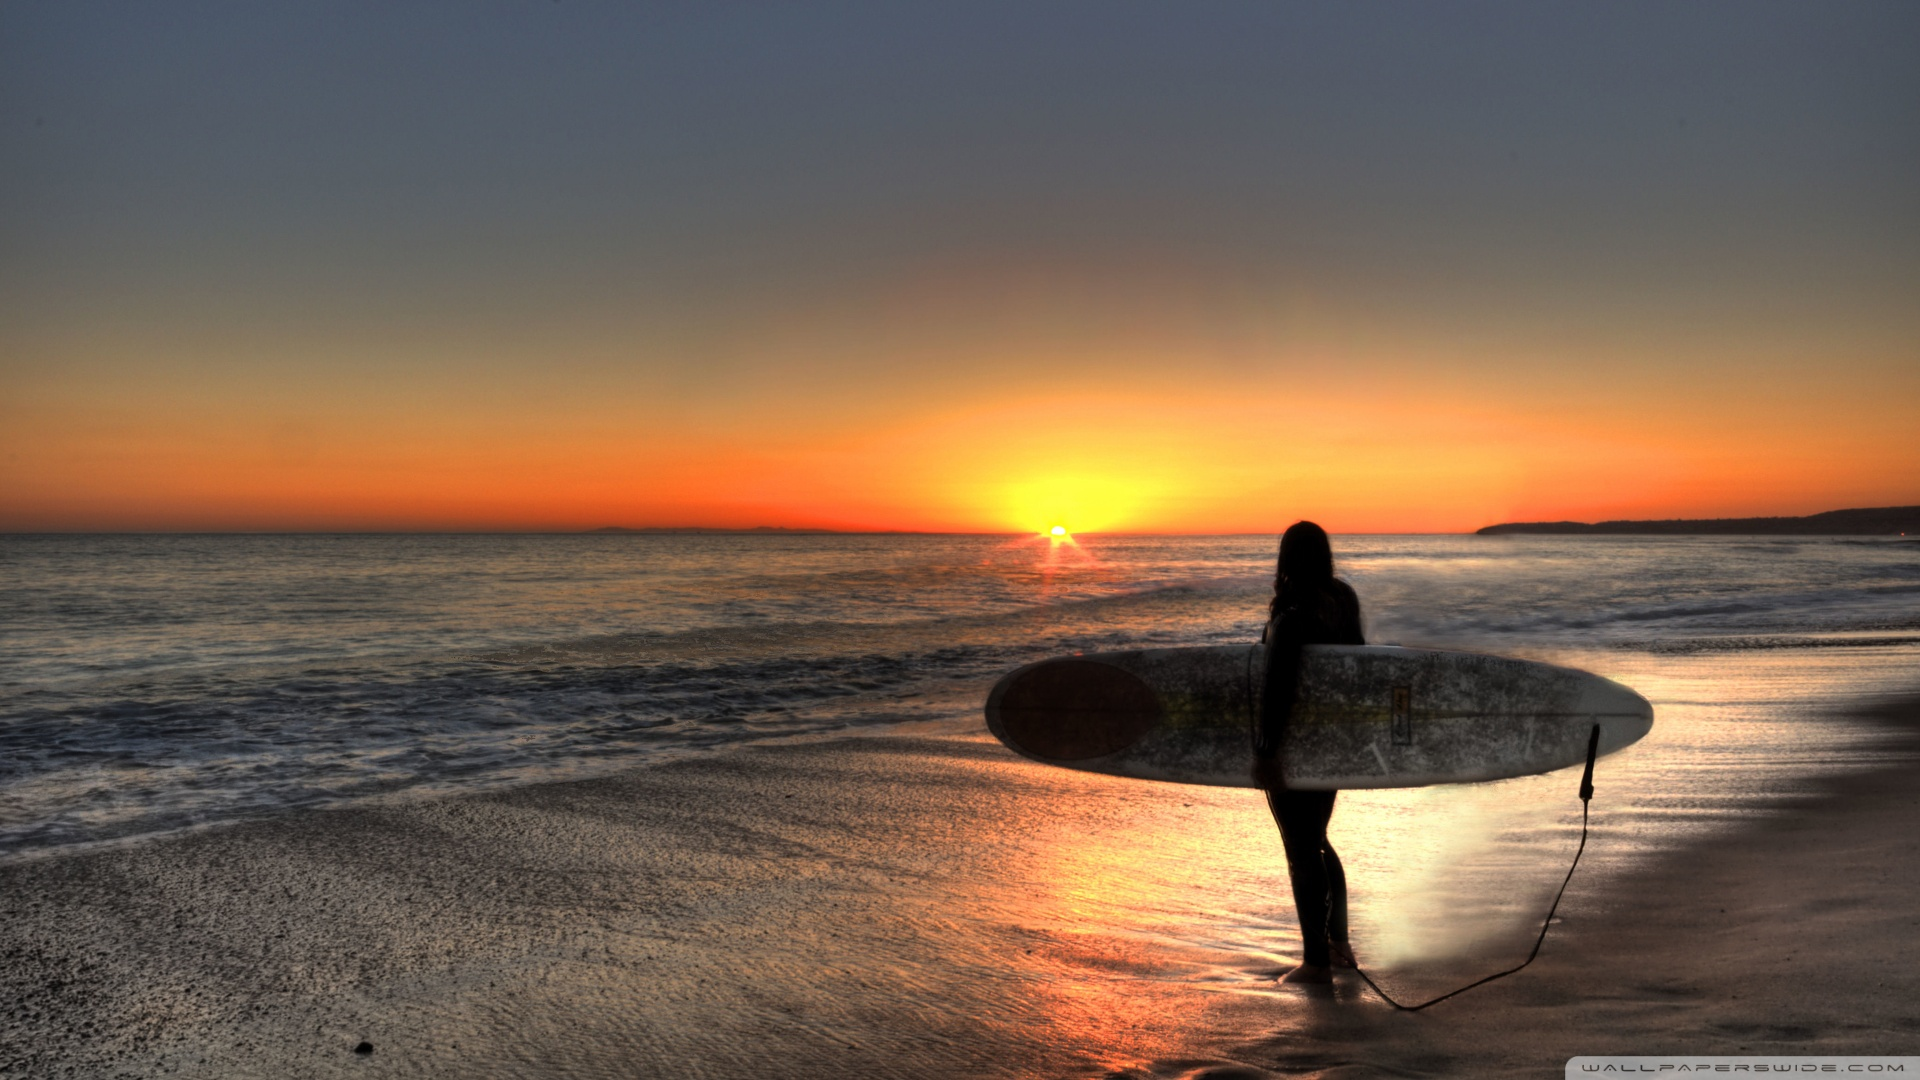 The Surfing Day Is Over 1920x1080 HD Wallpaper Sport Surfing Water 1920x1080